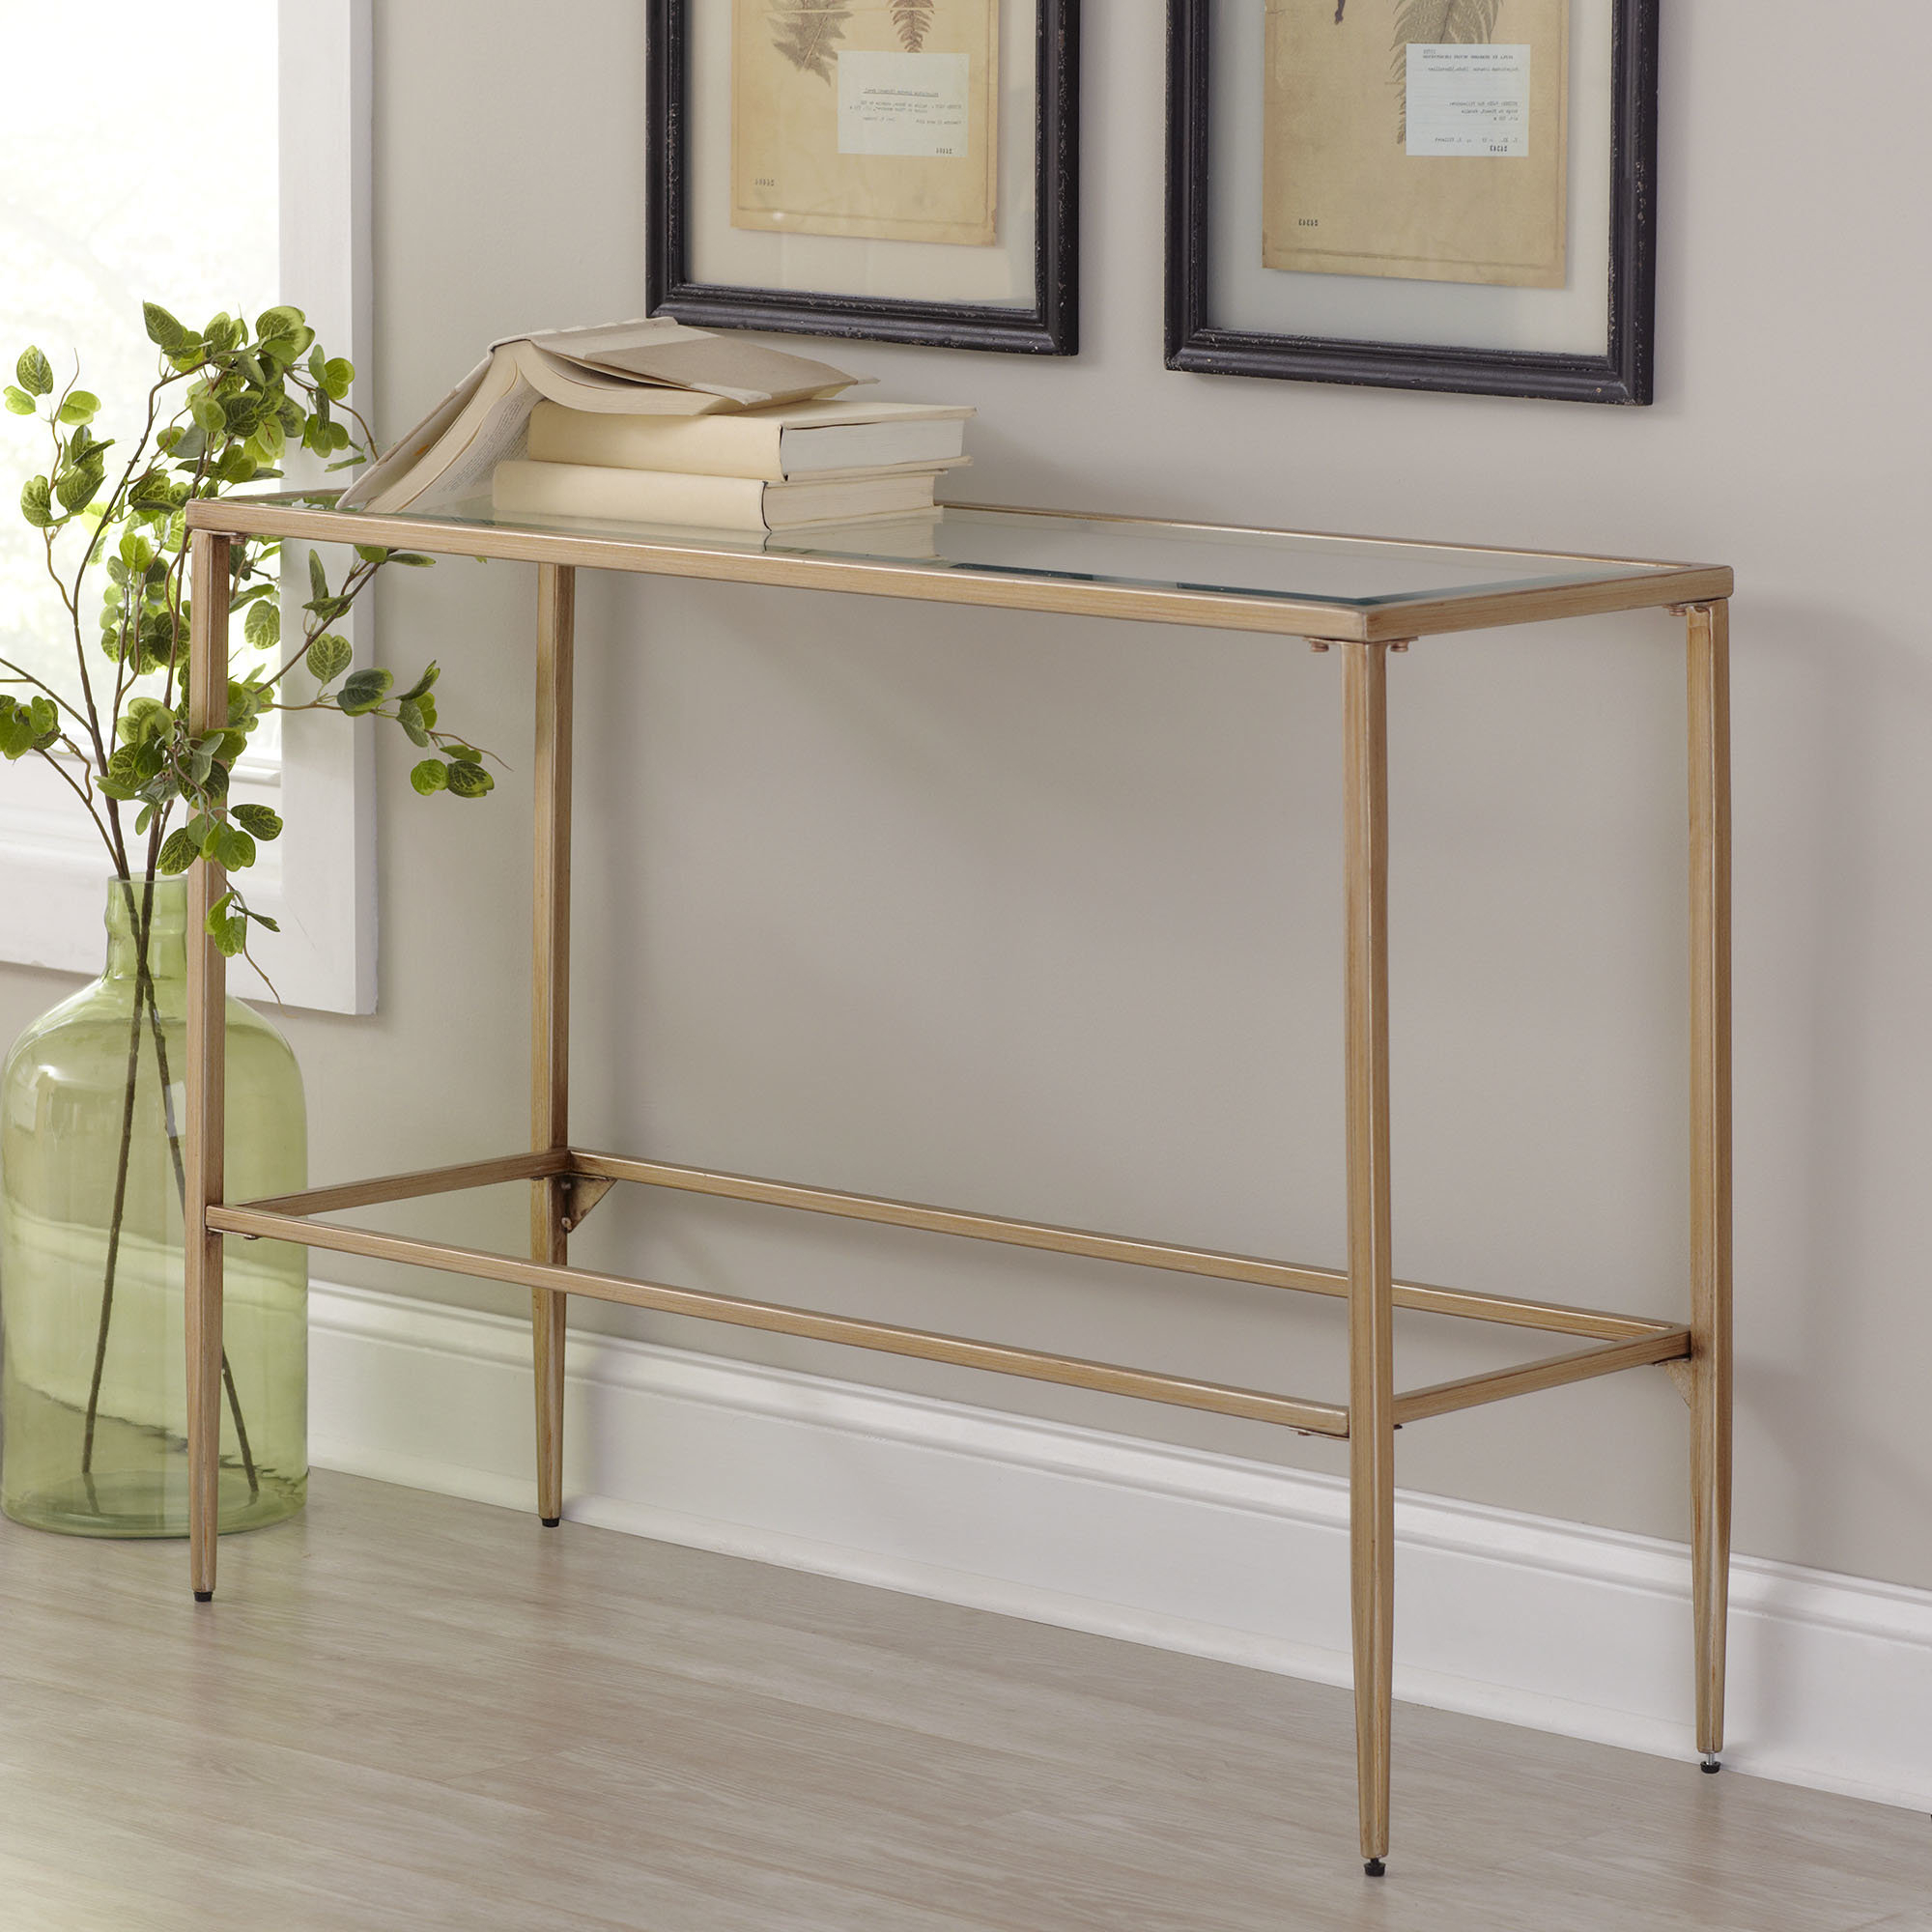 Narrow Gold Console Table | Wayfair Throughout Natural Wood Mirrored Media Console Tables (View 18 of 20)